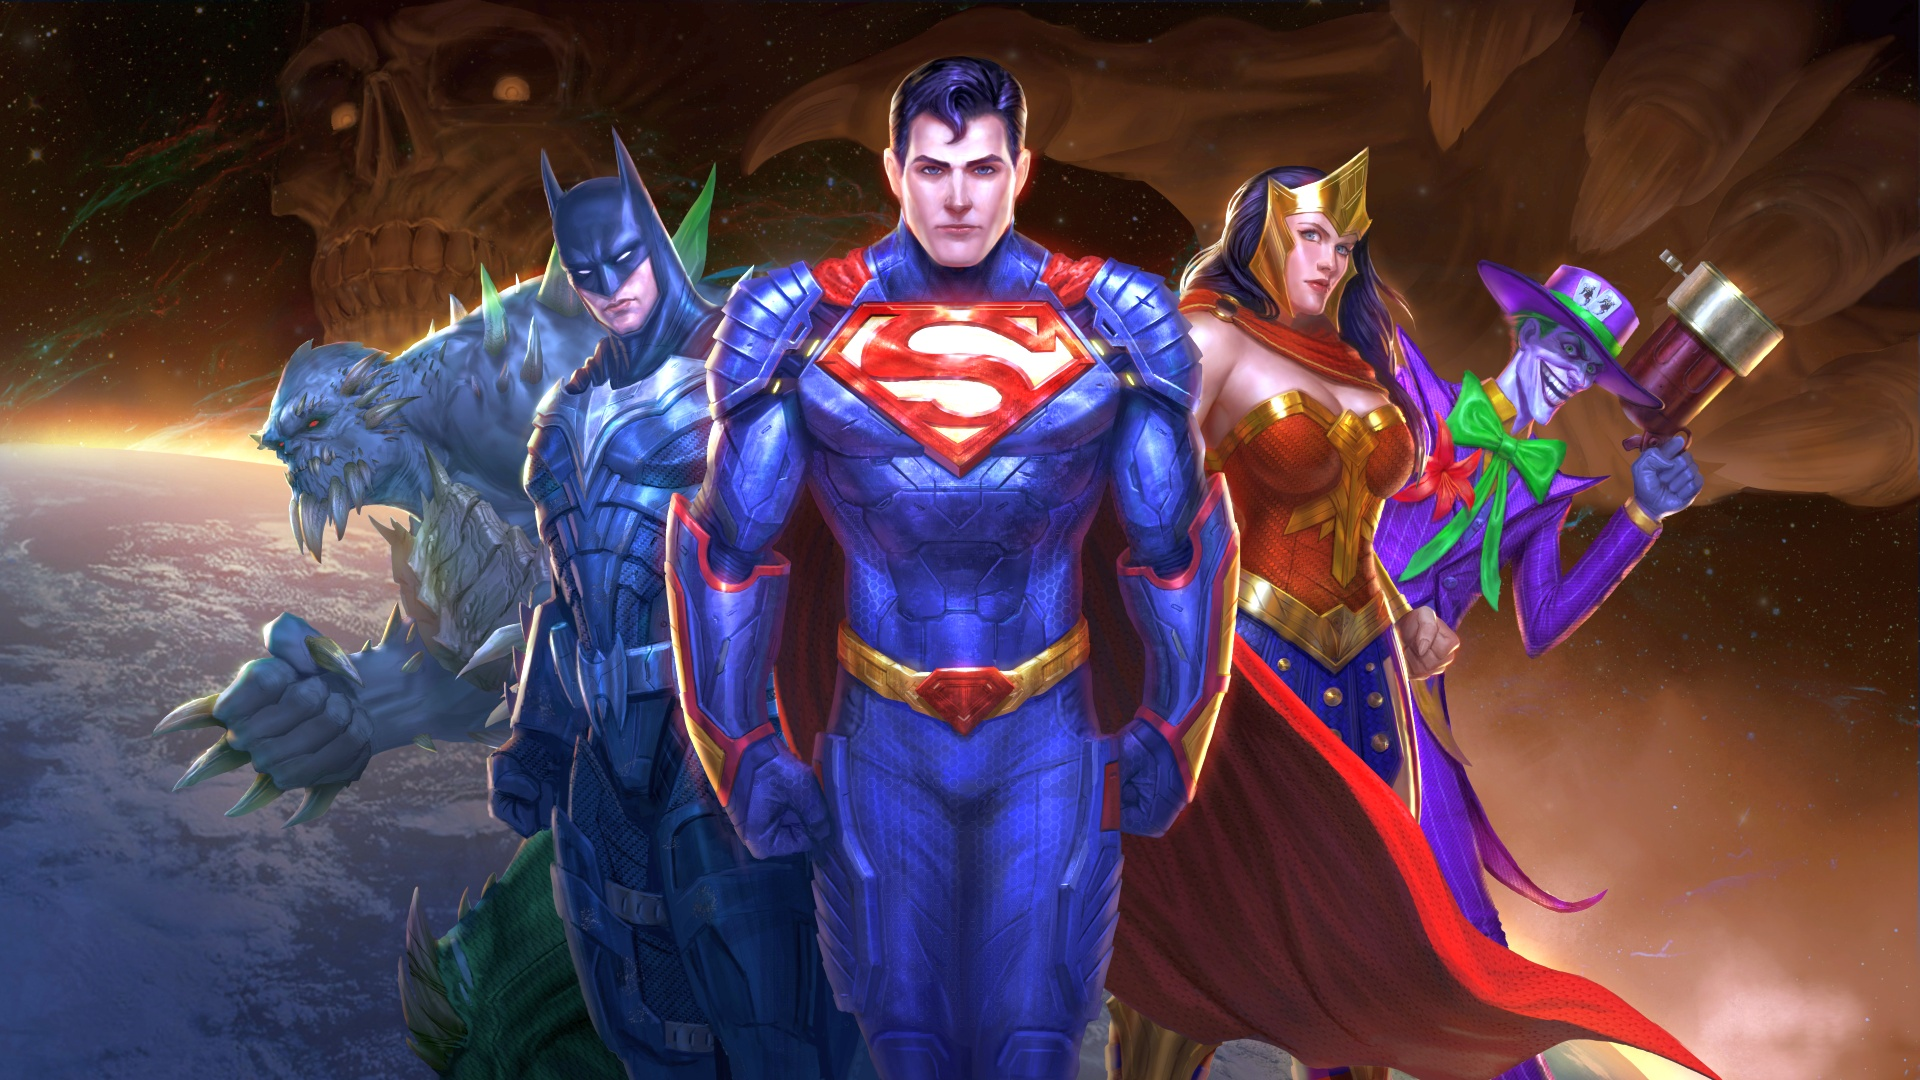 Annunciato DC Legends per iOS e Android (Trailer e preregistrazione al New York Comic Con)